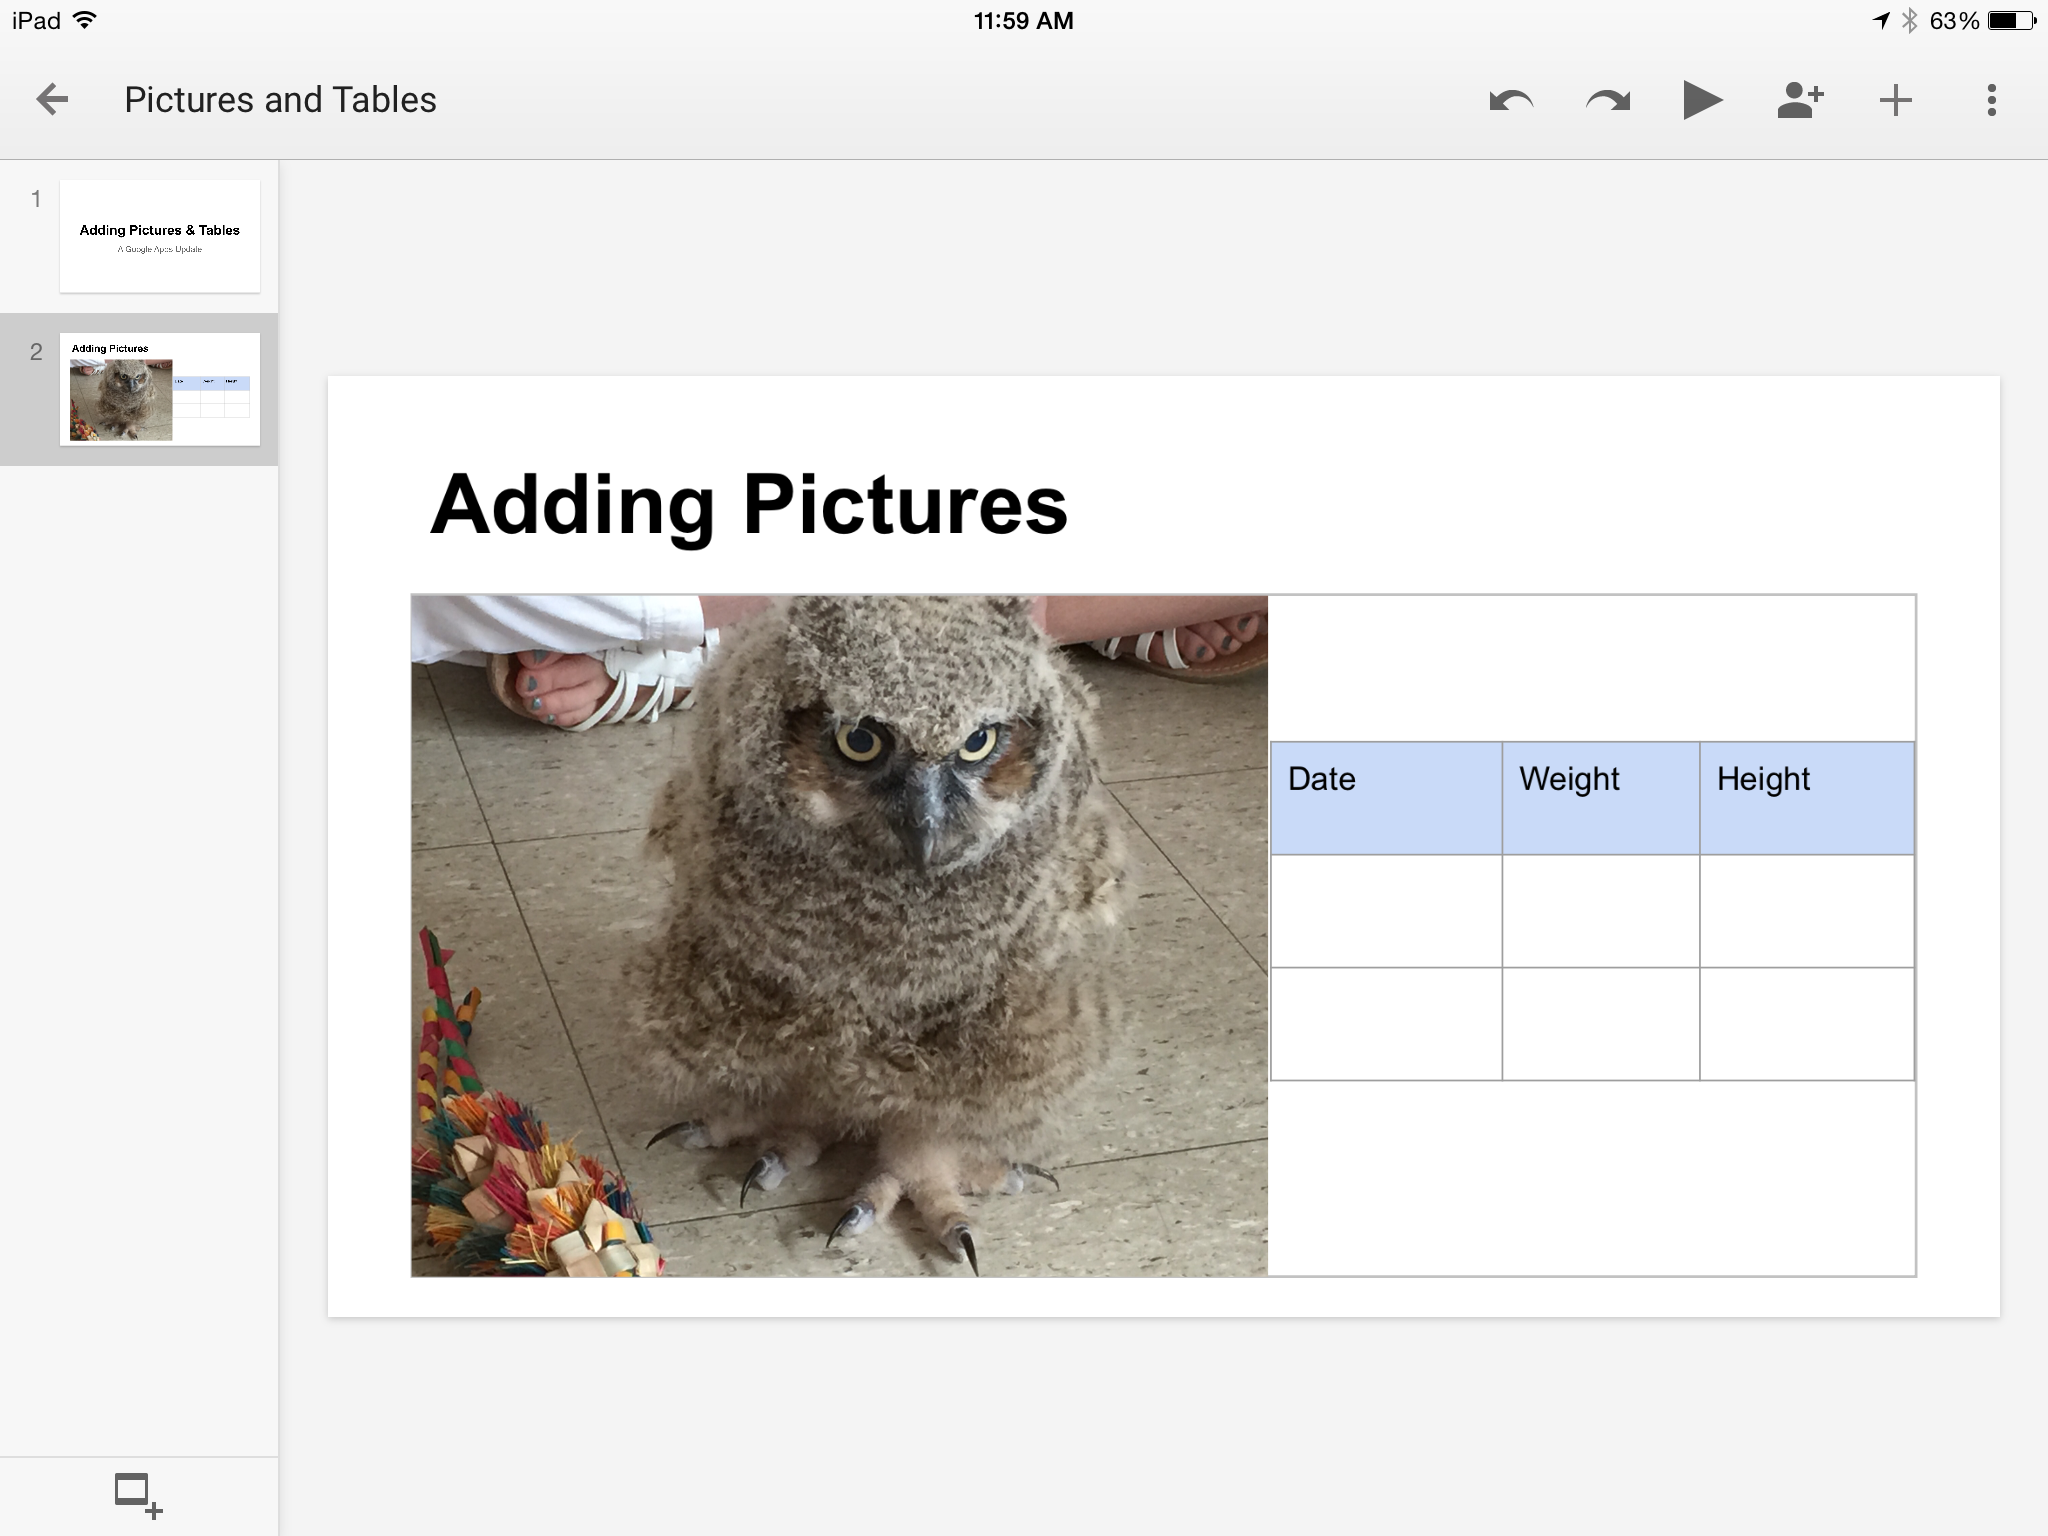 You Can Now Add Images and Tables in the Google Docs and Slides Apps